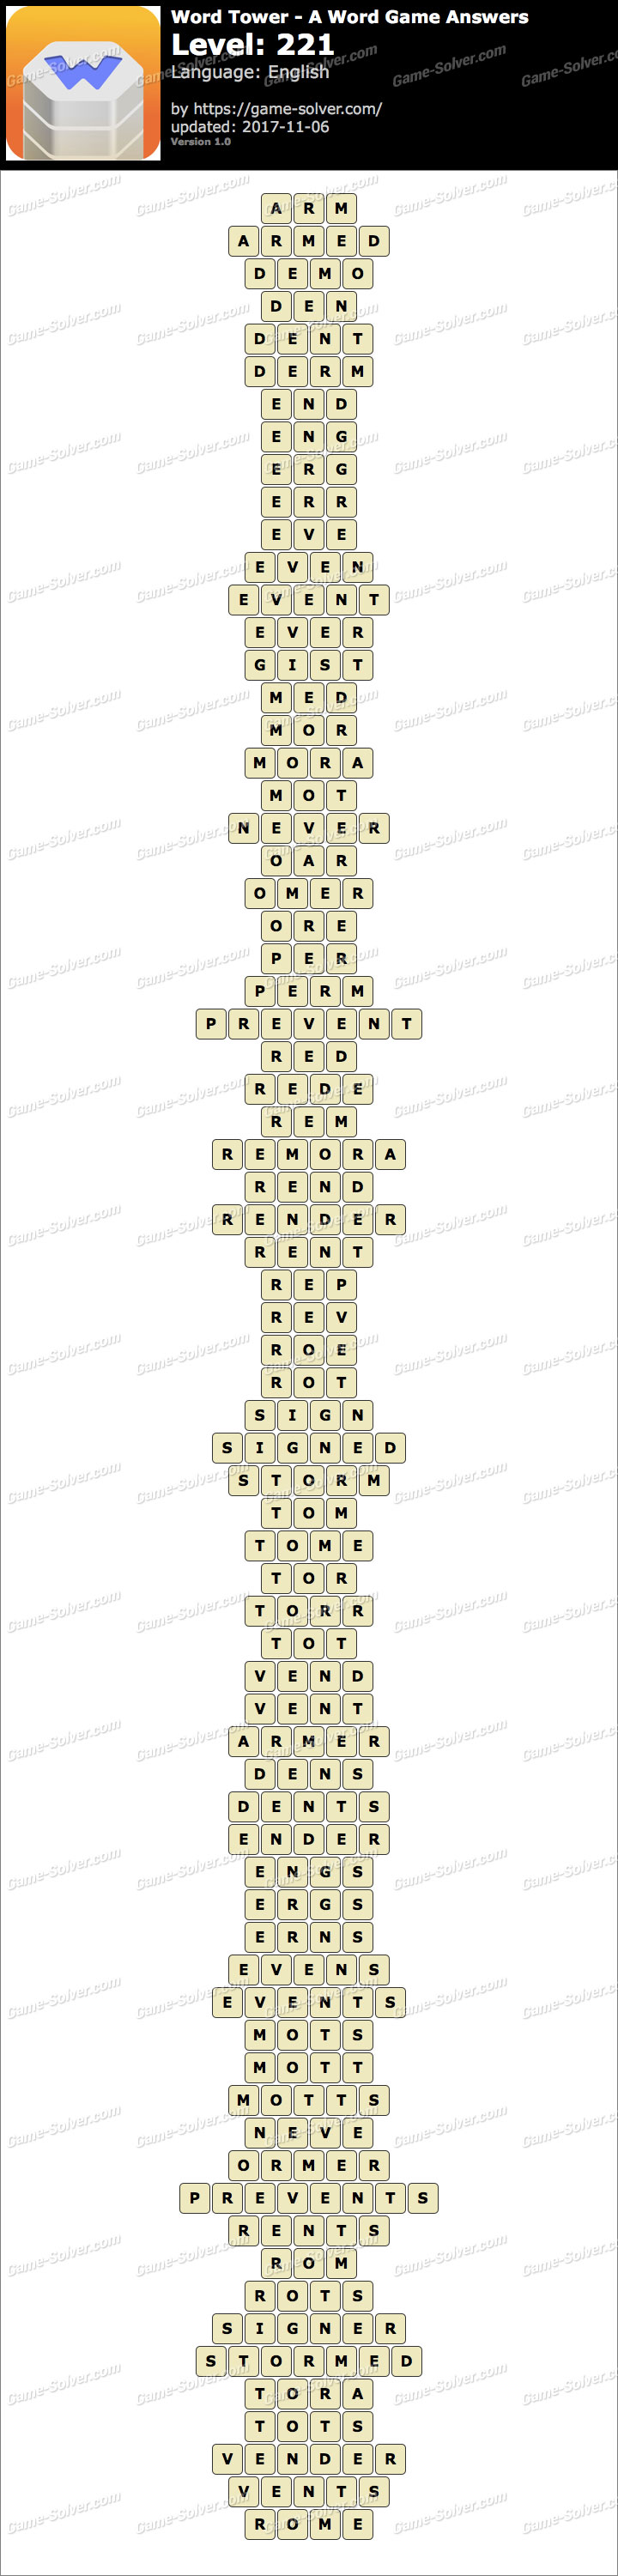 Word Tower Level 221 Answers